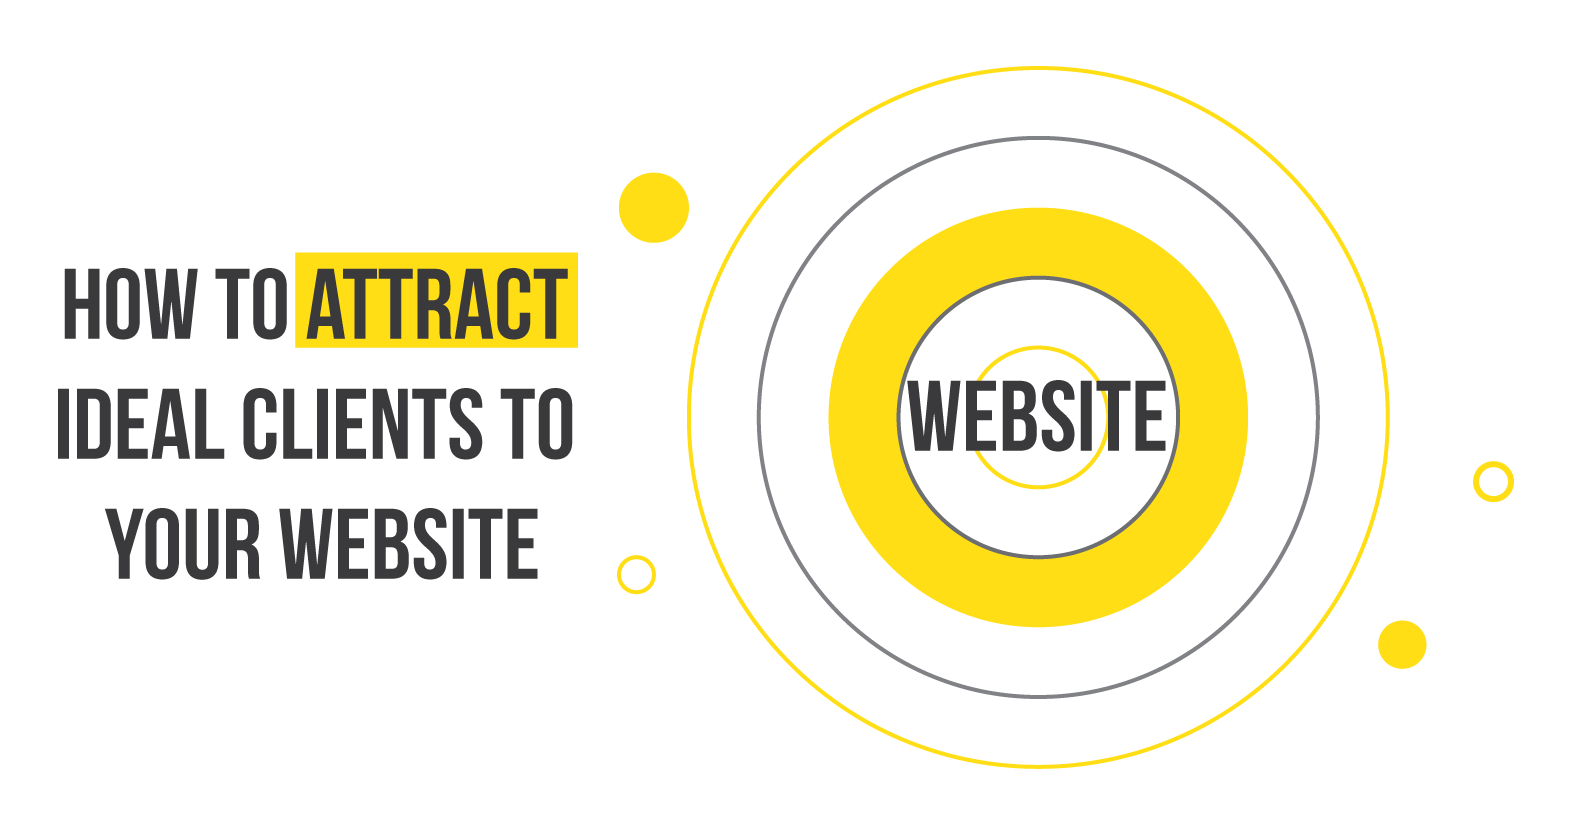 How to Attract Ideal Clients to your Website